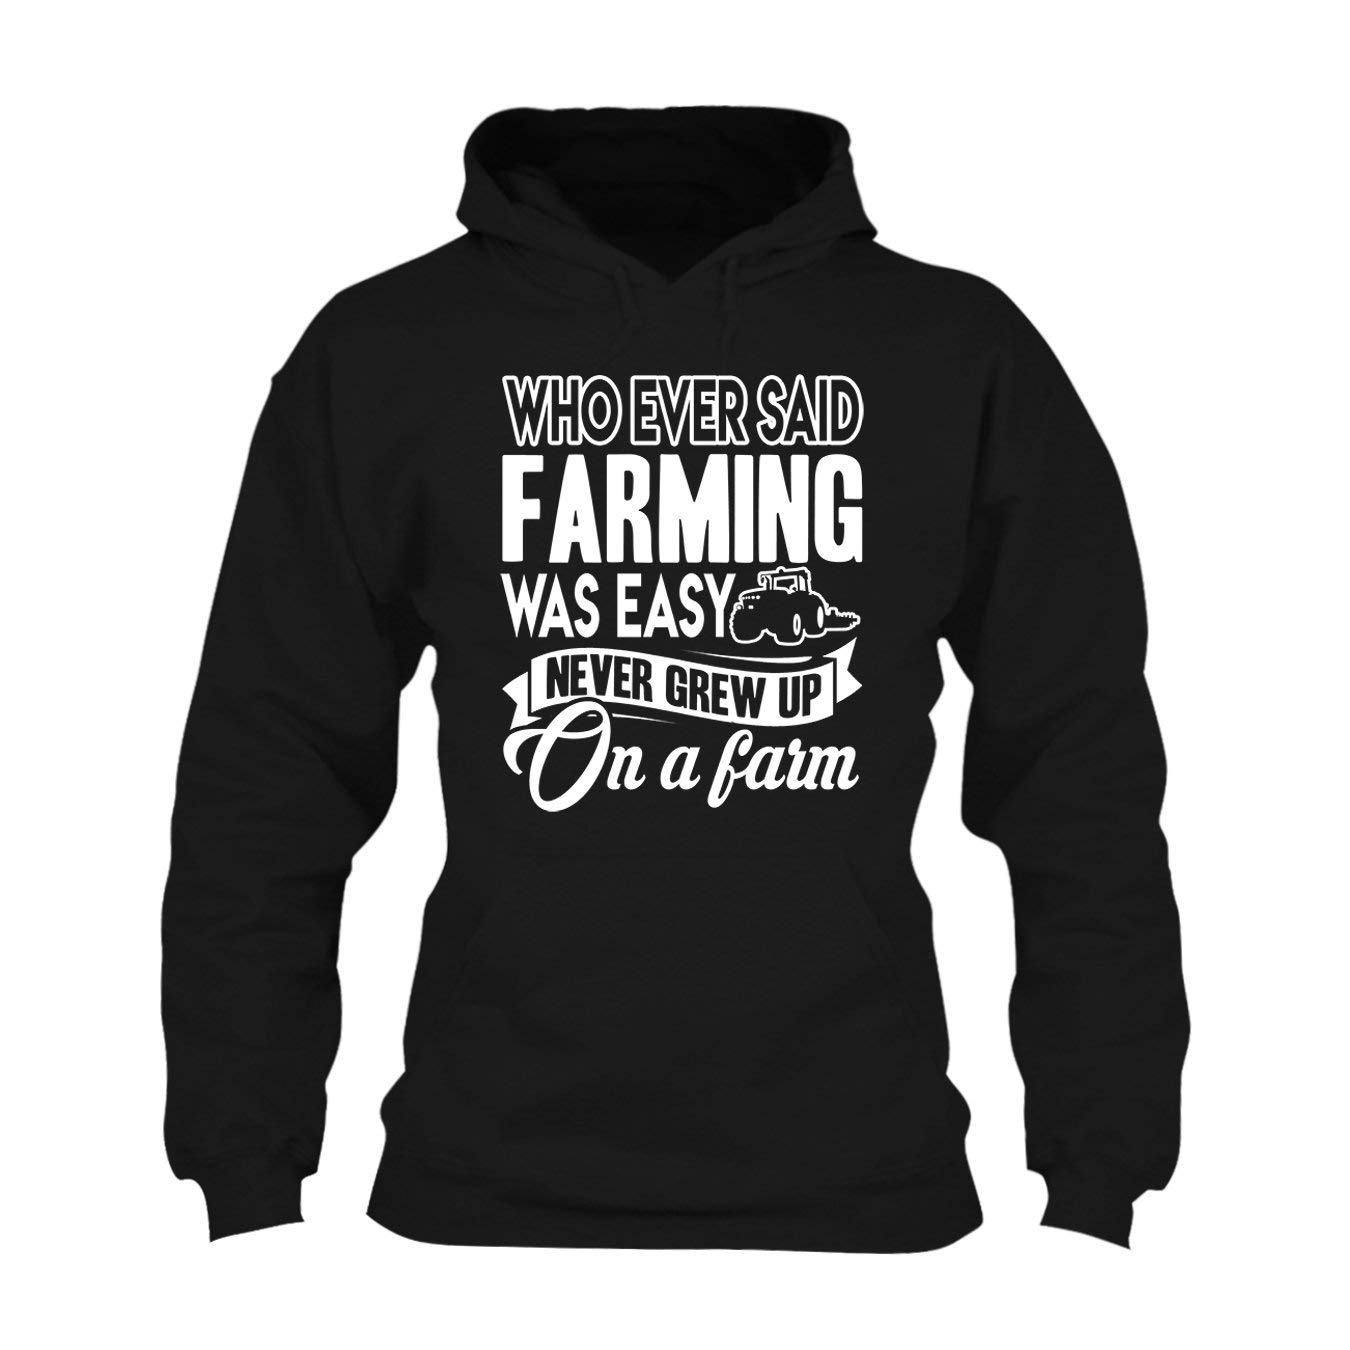 Long Hoodie Hooded Sweatshirt Farming was Not Easy Hoodie